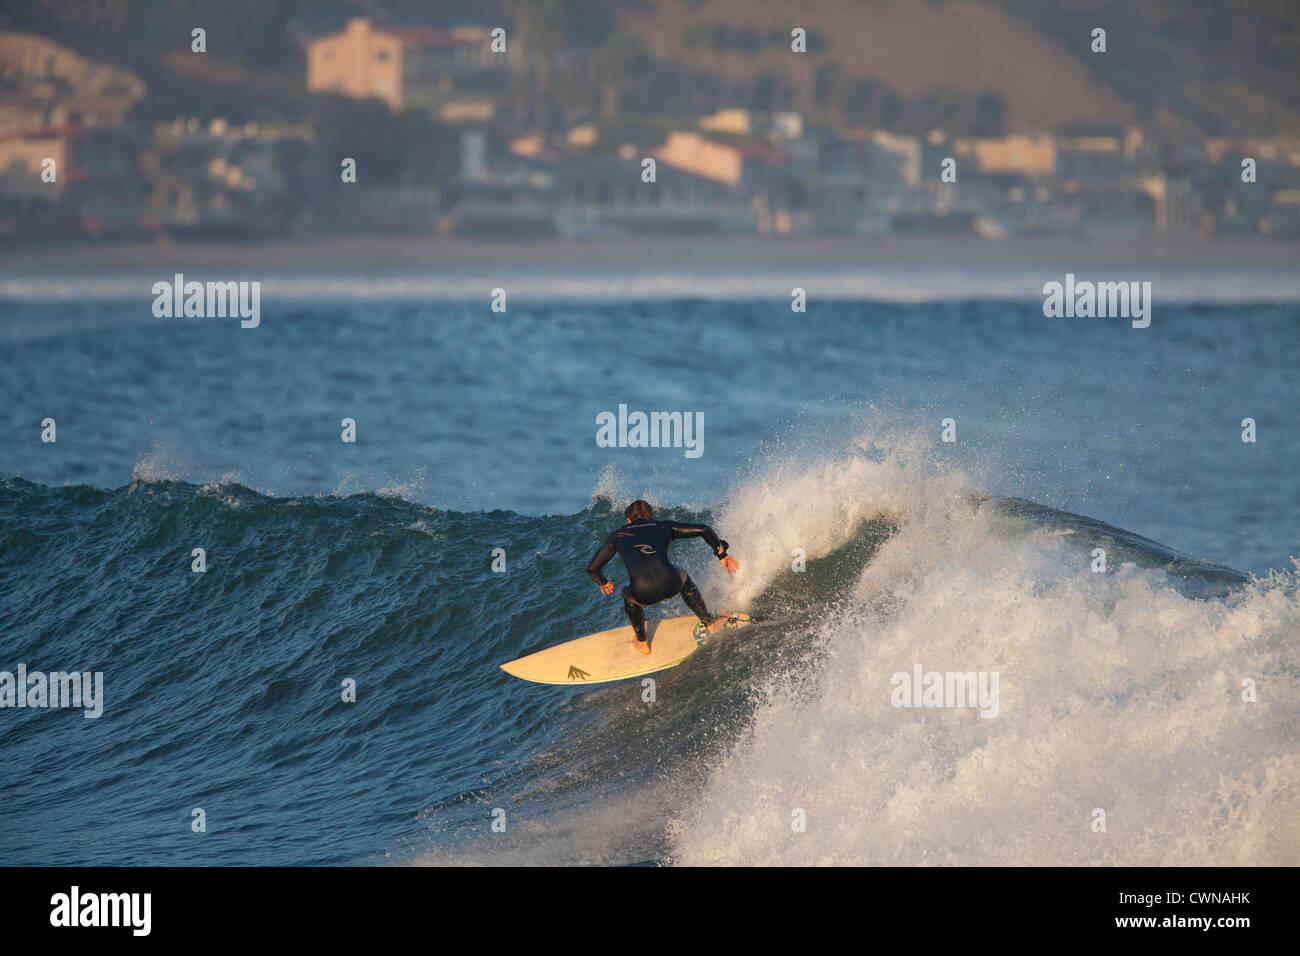 Surfer riding a wave at Malibu beach during a large swell Stock Photo